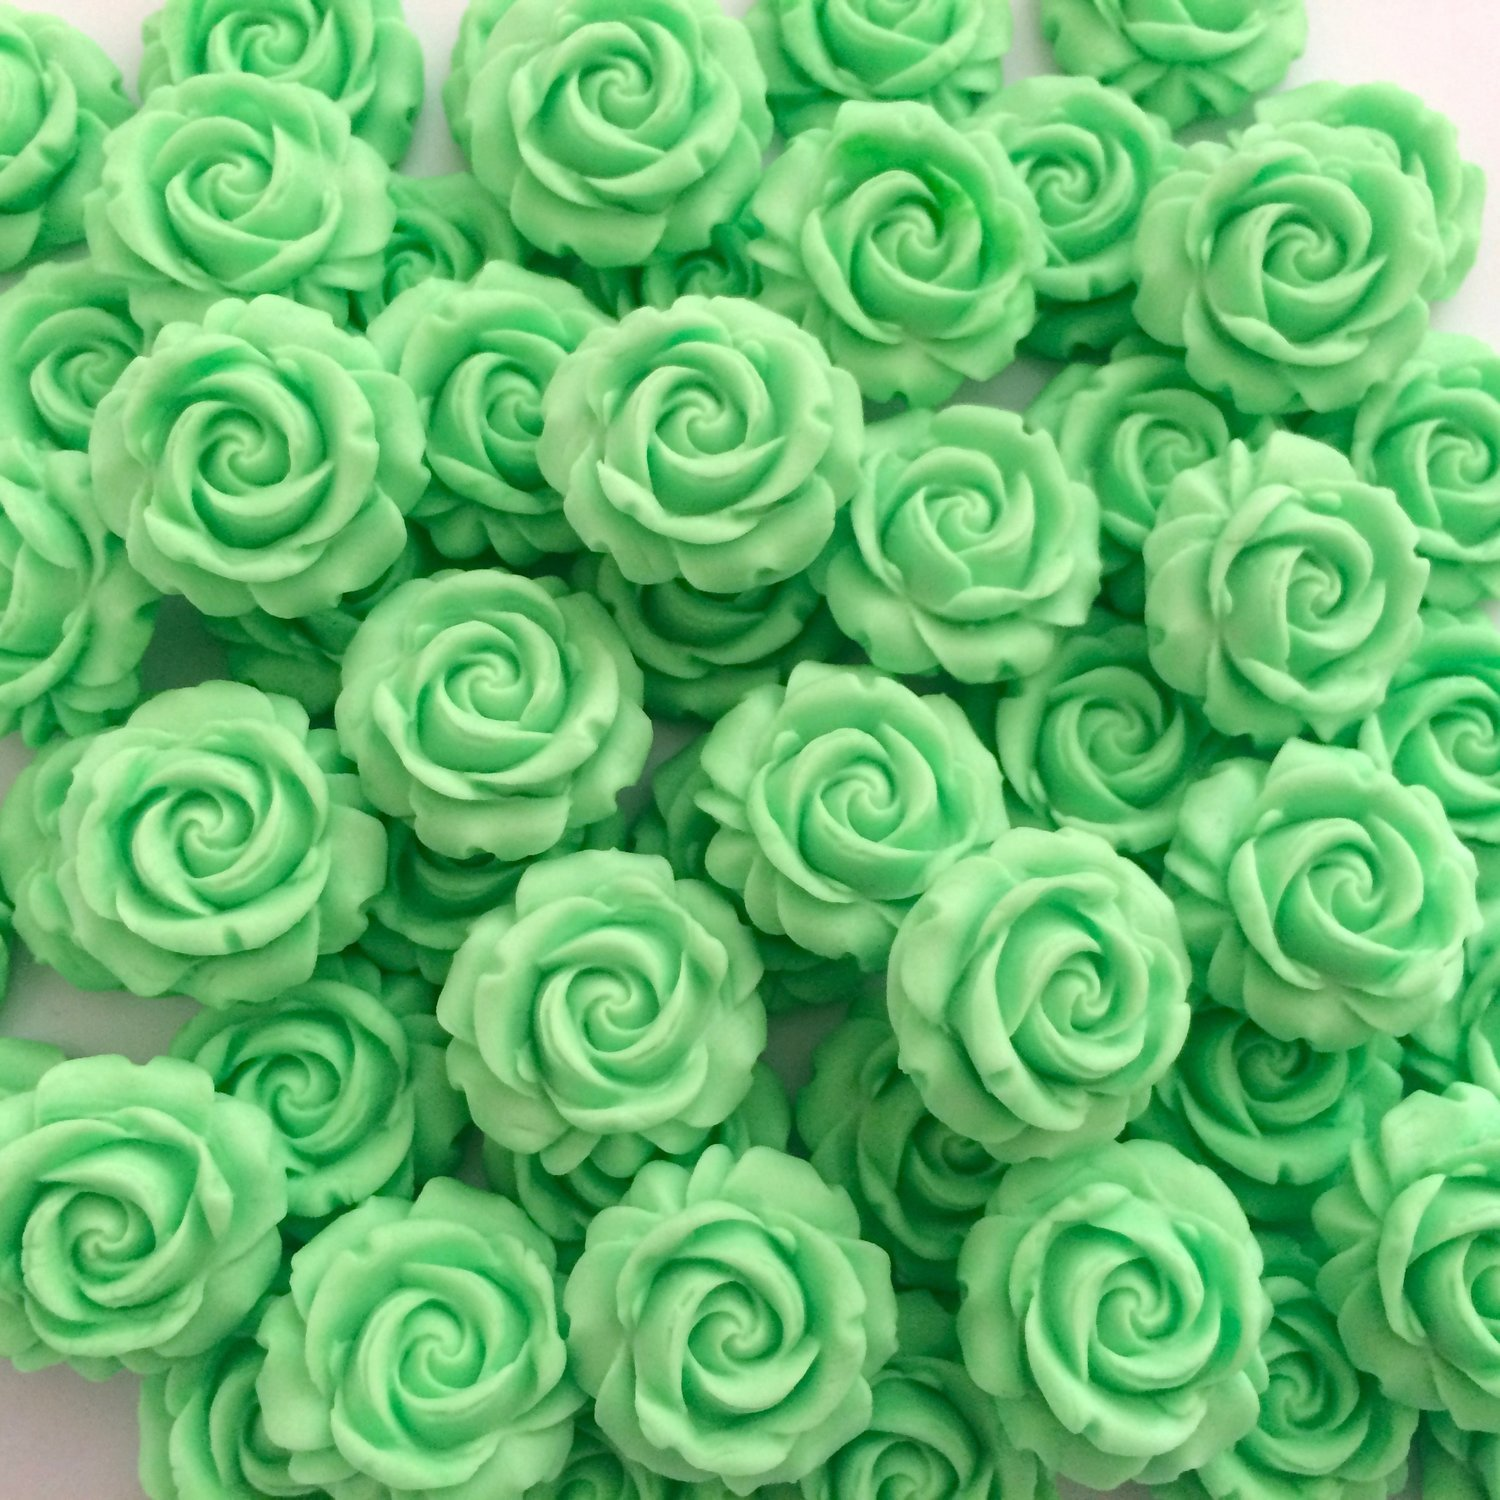 Mint Green Sugar Roses